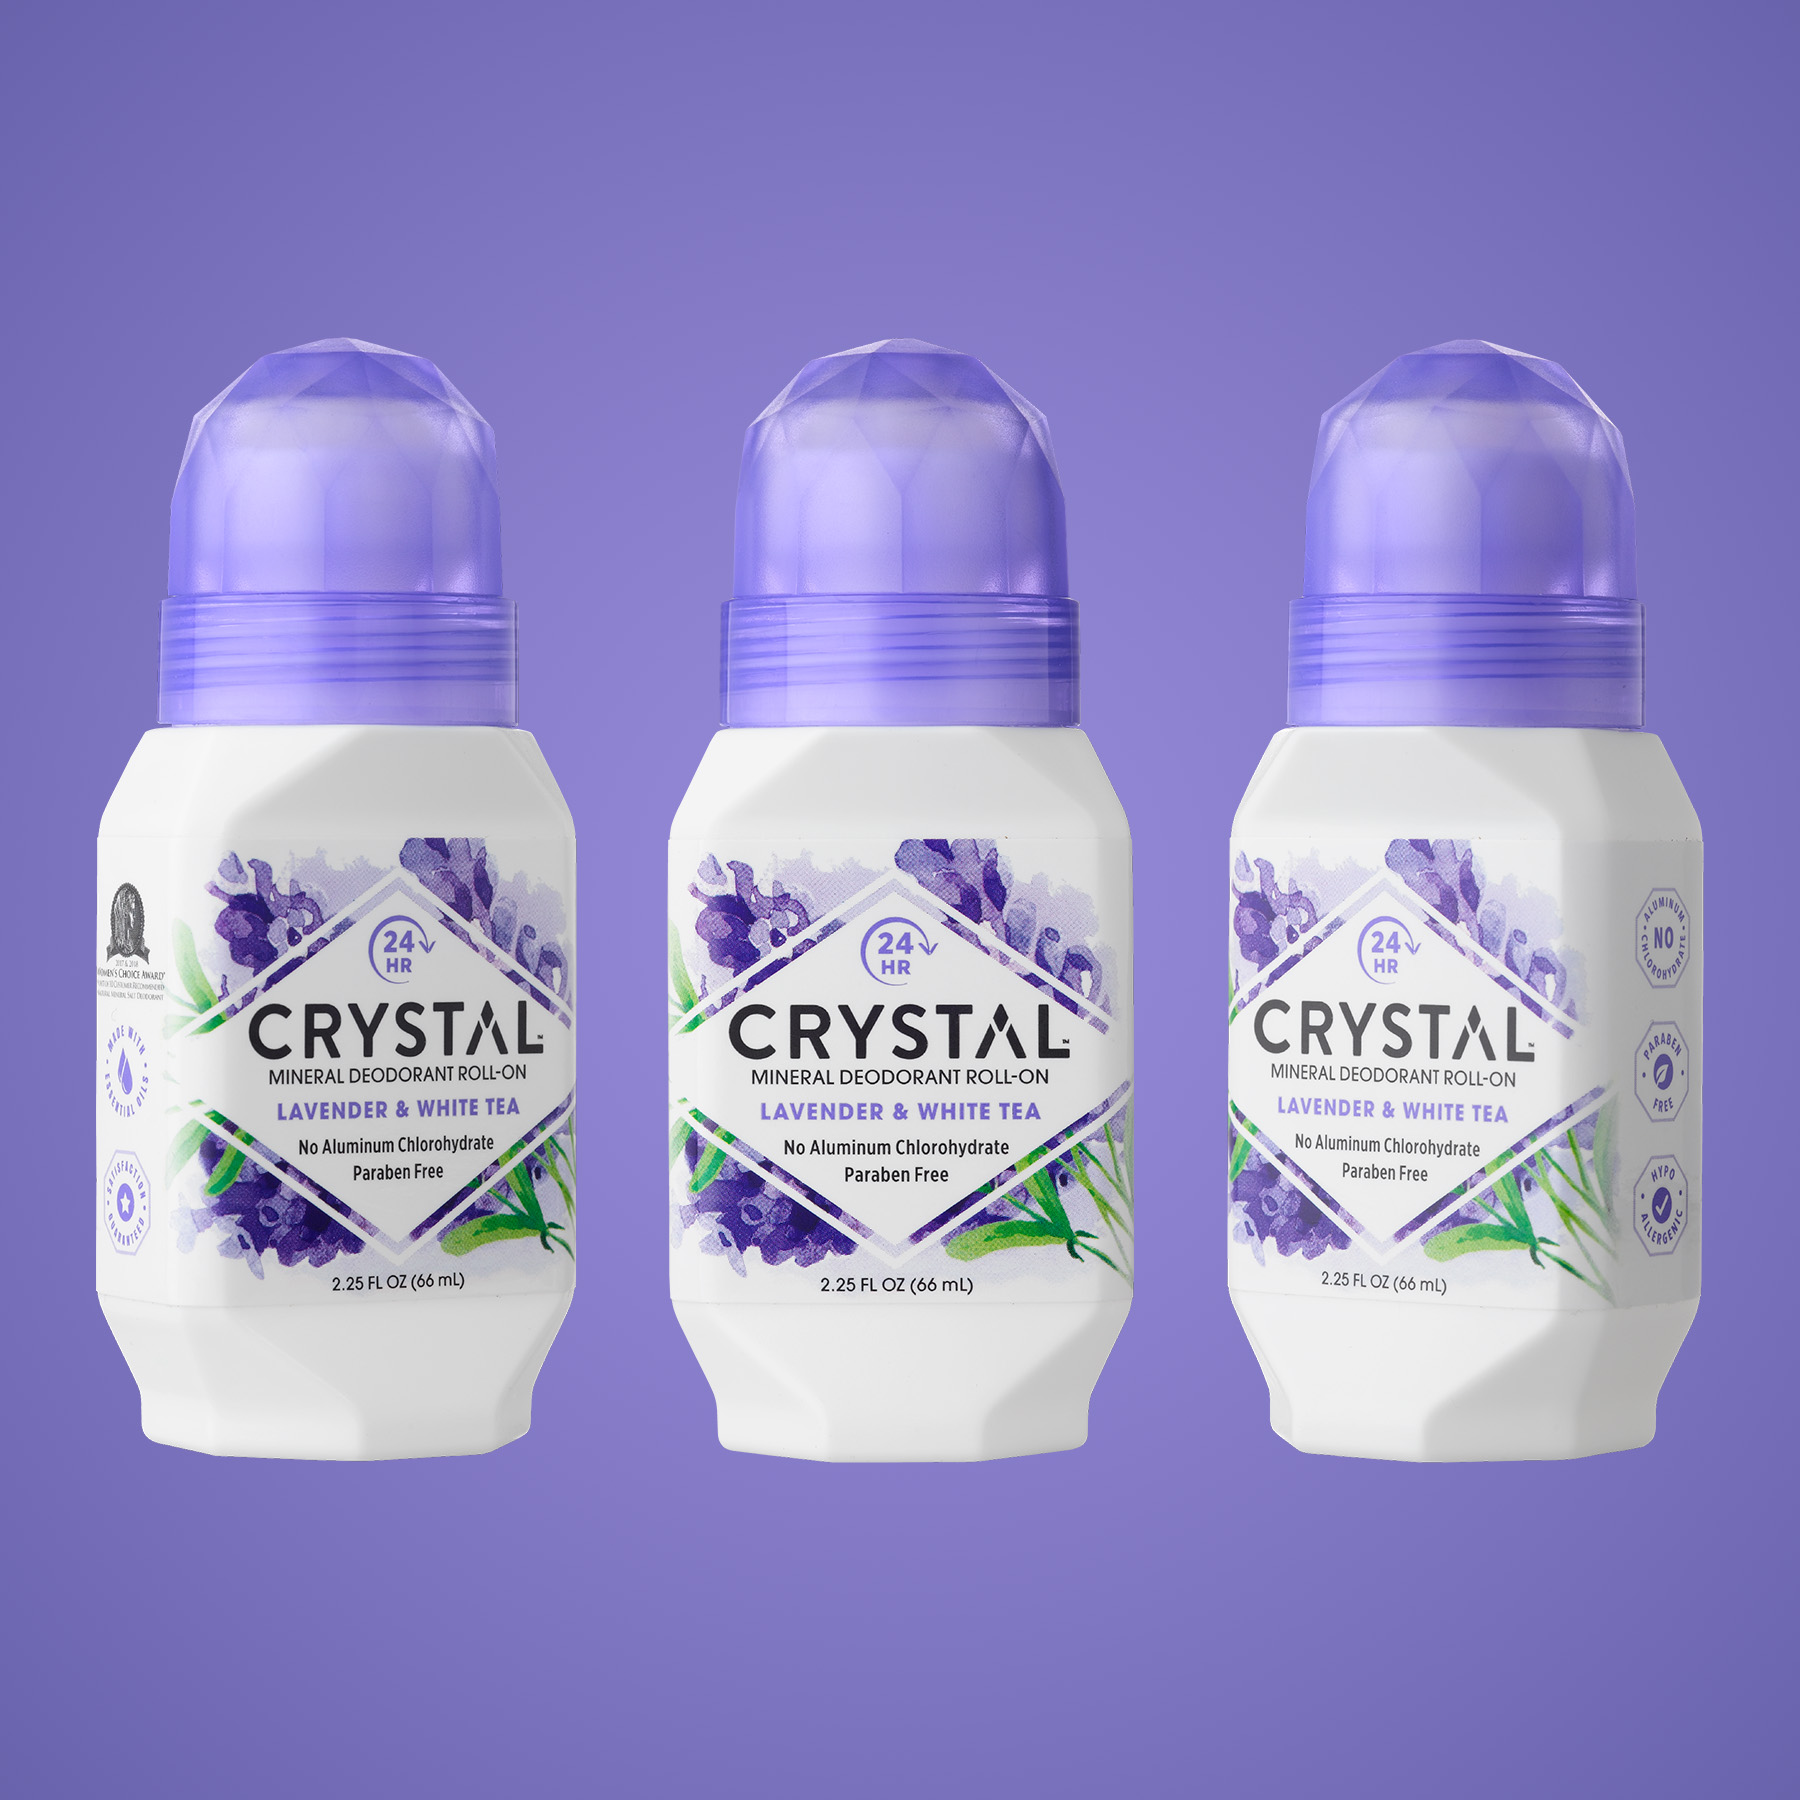 Crystal Deodorant Structure